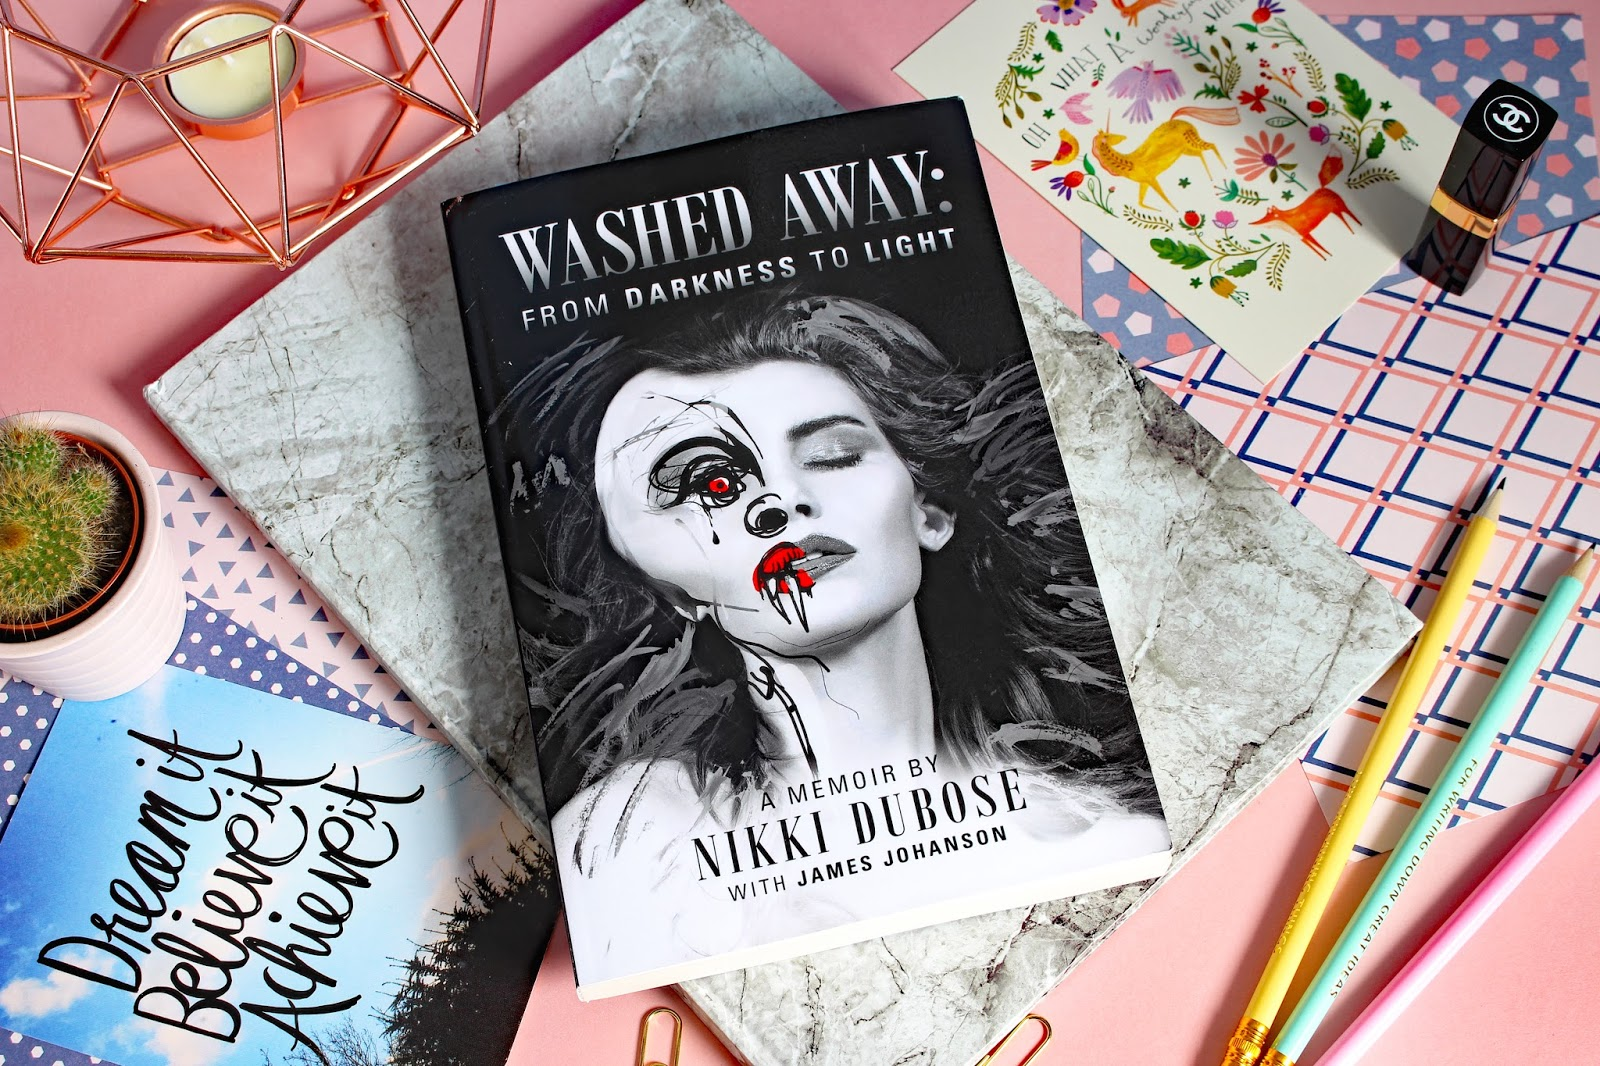 Review: Washed Away From Darkness To Light: A Memoir By Niki Dubose book mental health illness depression anxiety child abuse support help review